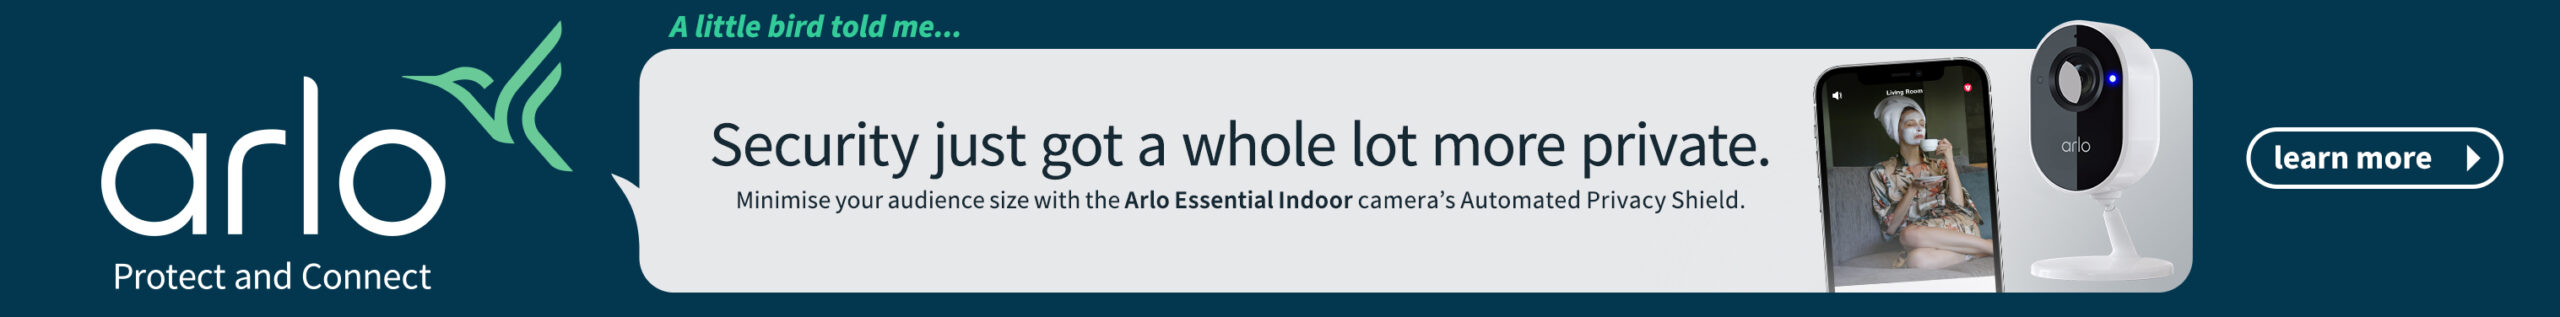 ARL0355 Arlo ESS Indoor Generic Banner 728x90 V4 scaled LG To Reveal New Smart TV Home Theatre Kits At CES